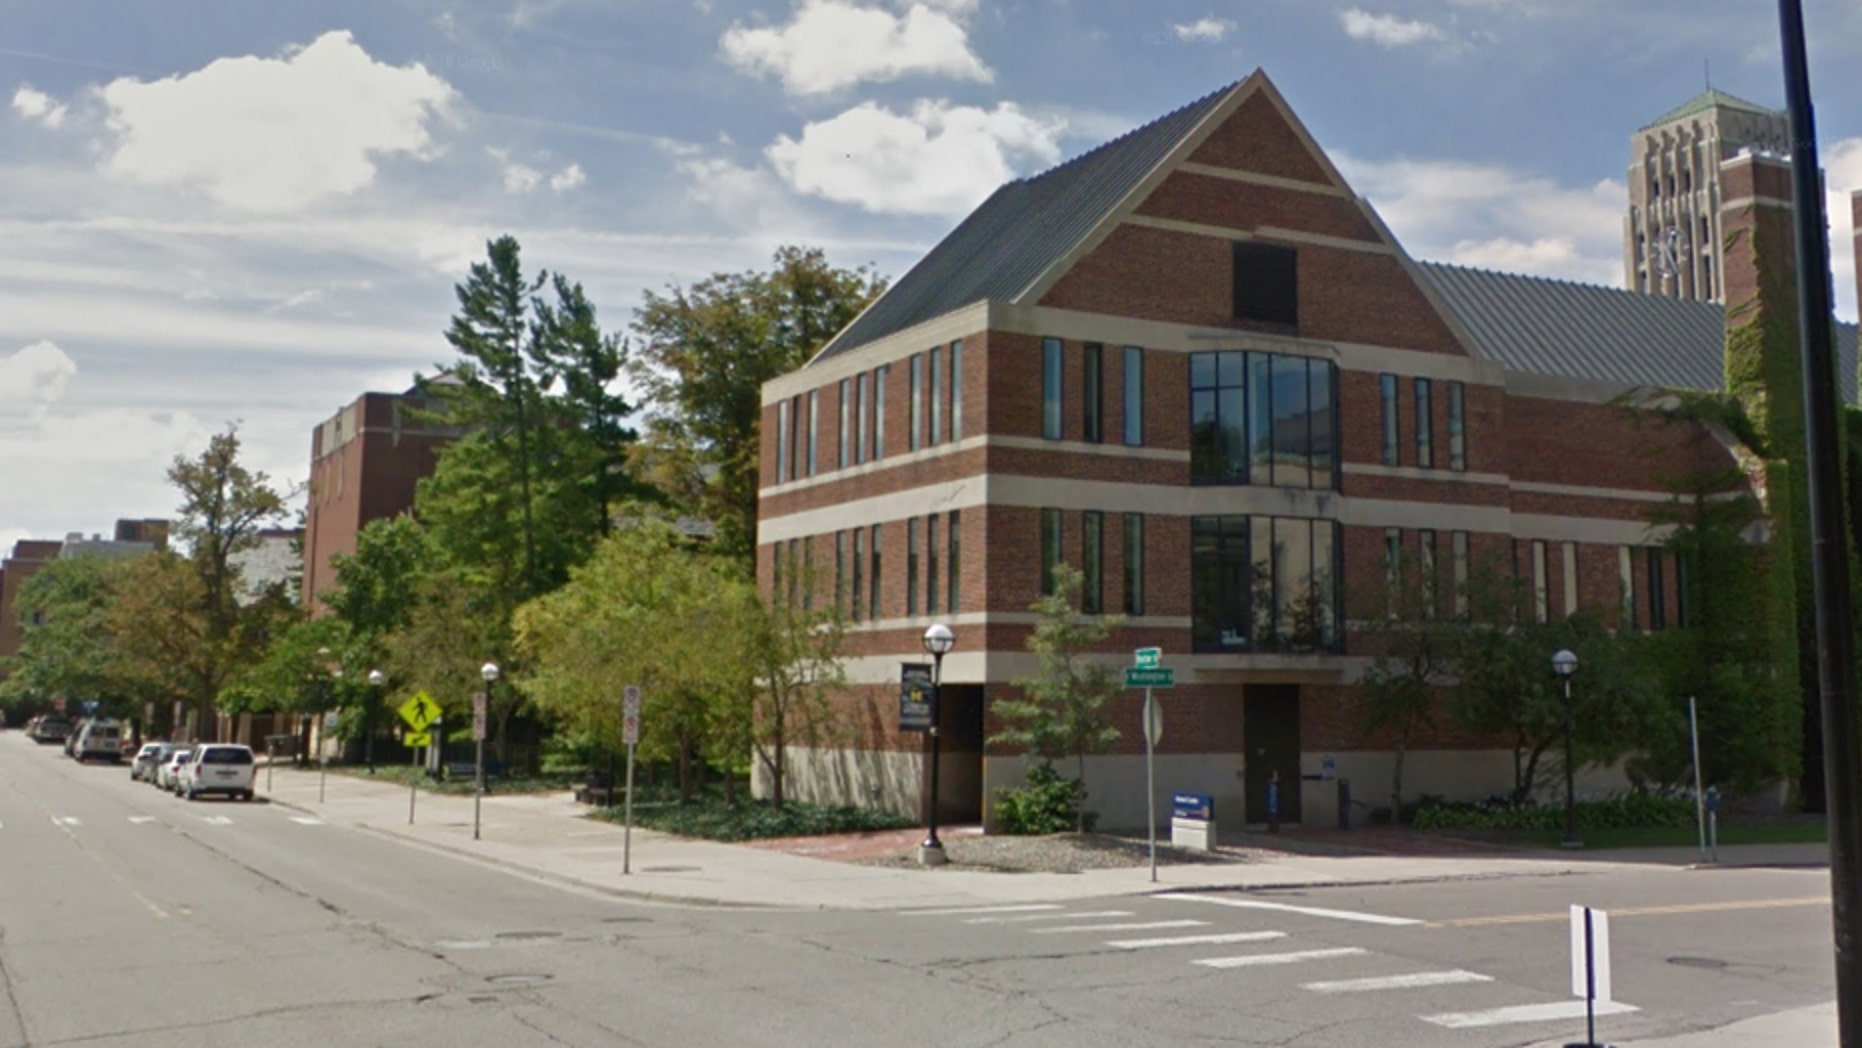 A University of Michigan student told campus police that he was walking on the 200 block of Fletcher St. on campus when he was approached by two other college-age men.